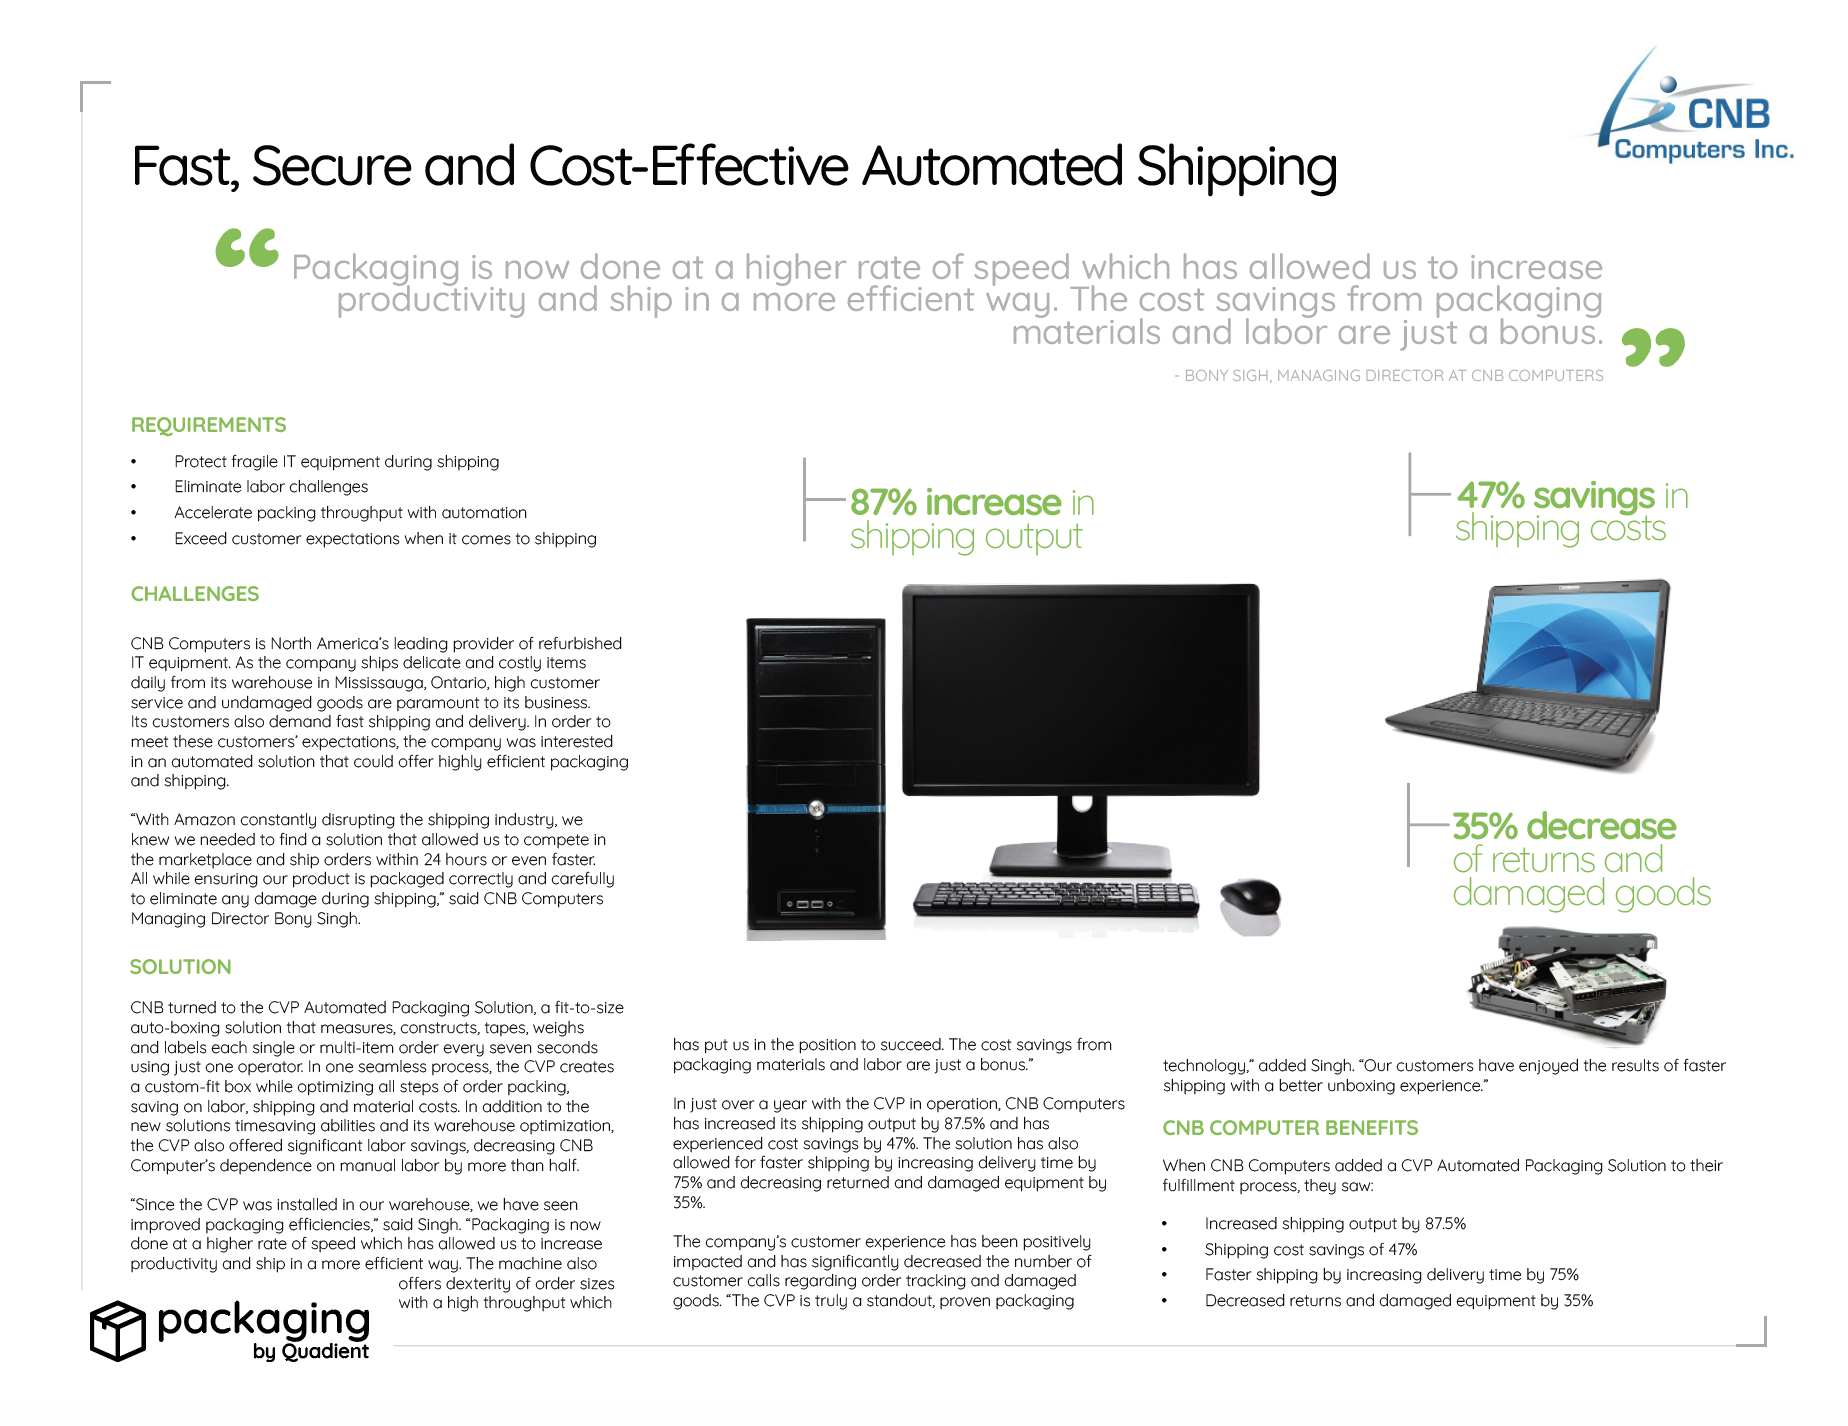 CNB Computers Case Study